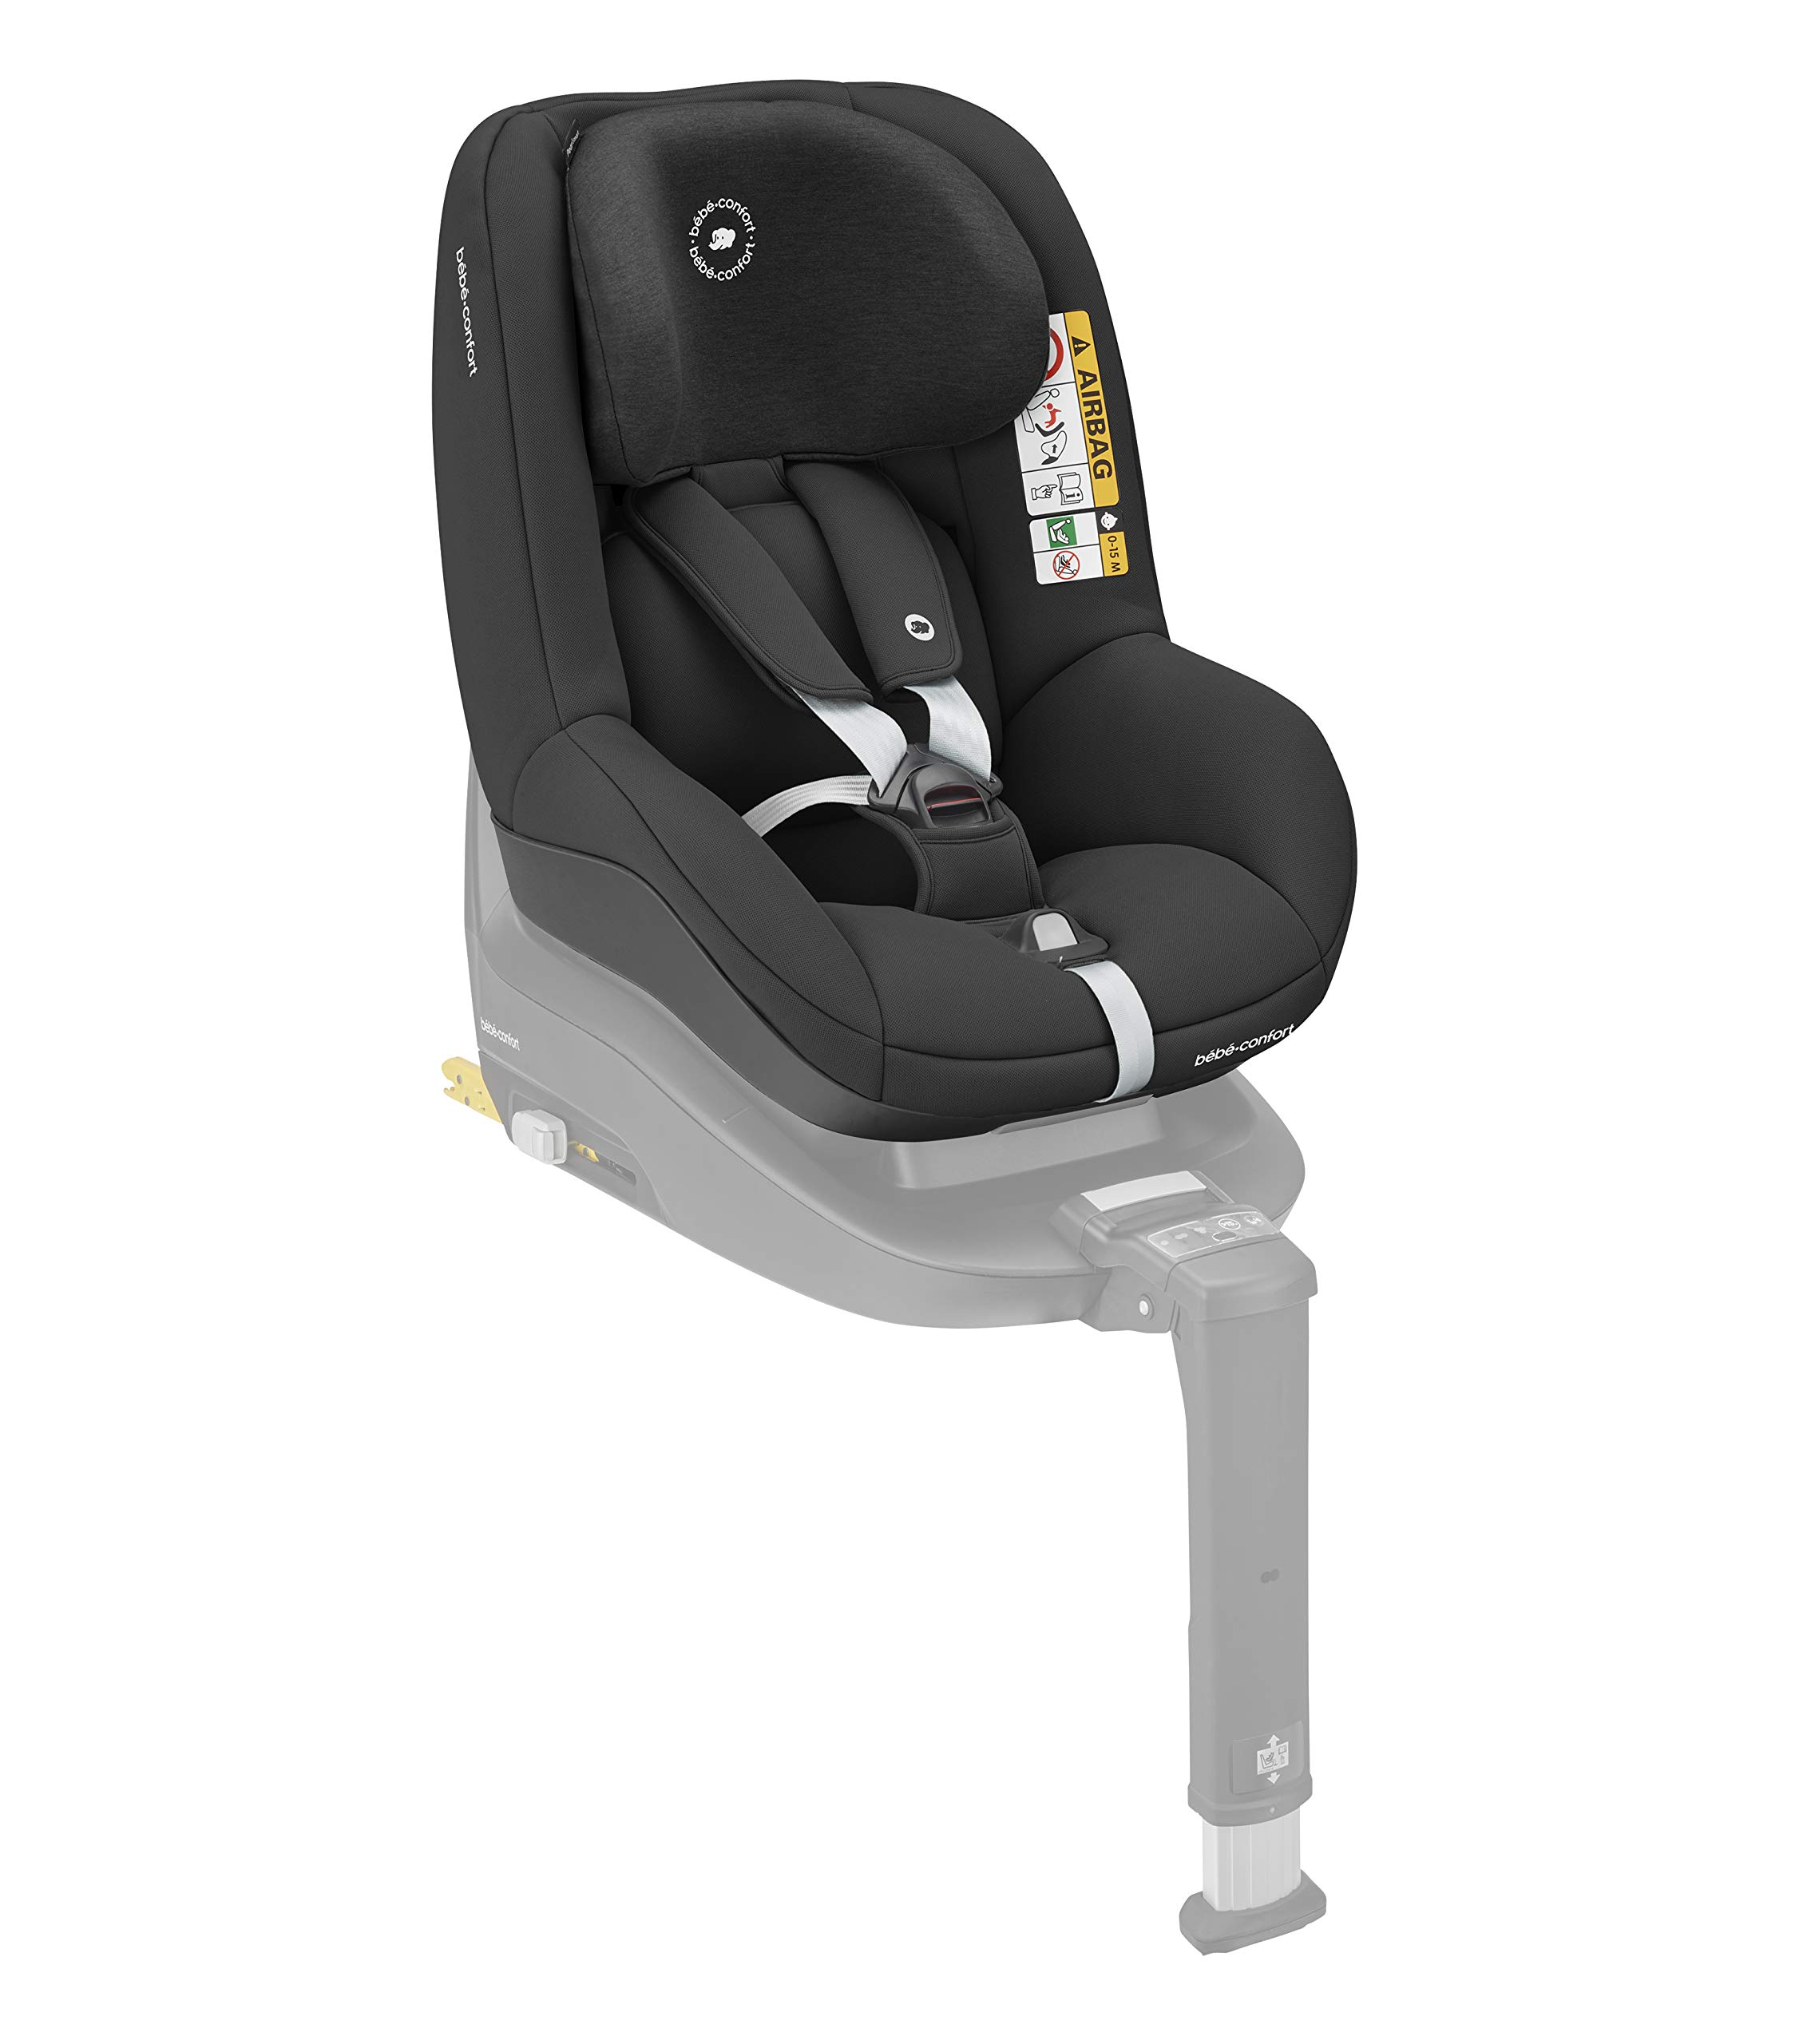 Bébé Confort Pearl Smart i Size 6.88 kg Bébé Confort Car seat 9-18 kg for children from 6 months to 4 years approx. height between 67 - 105 cm, approved i-size (ECE R129) Can be used in the opposite direction of travel up to 4 years (a backward mounted seat is 5 times safer) to protect baby's head and neck Car seat reclines into 4 positions in both directions for maximum comfort for your child. 2